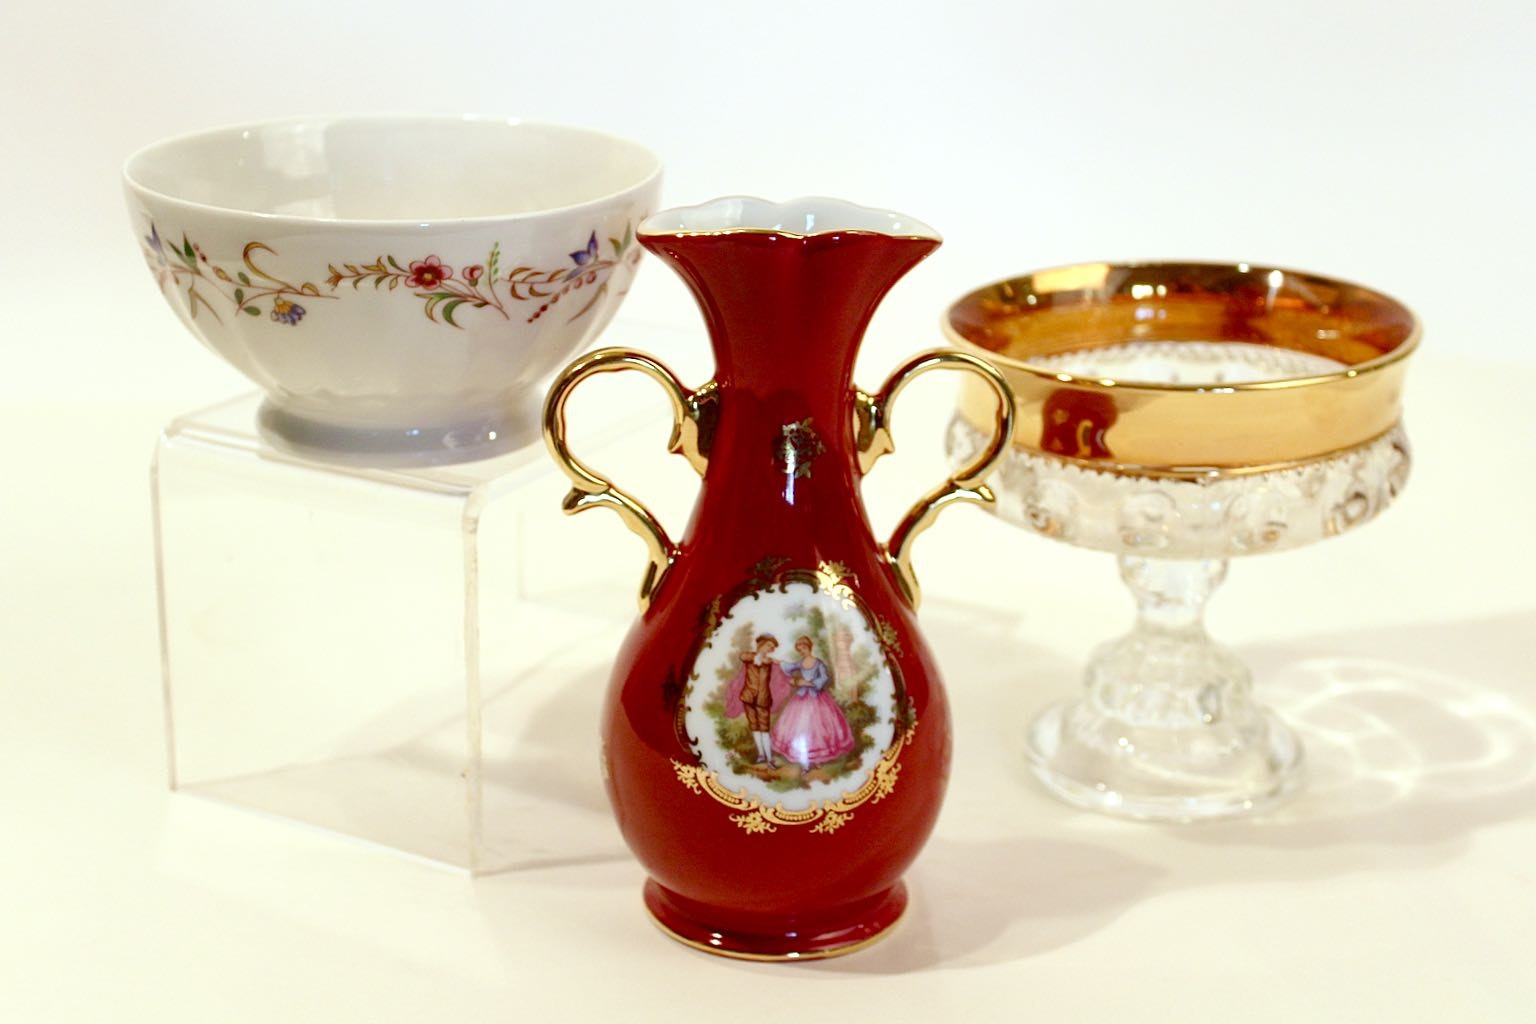 Vintage French Porcelain Collectibles includes Limoges